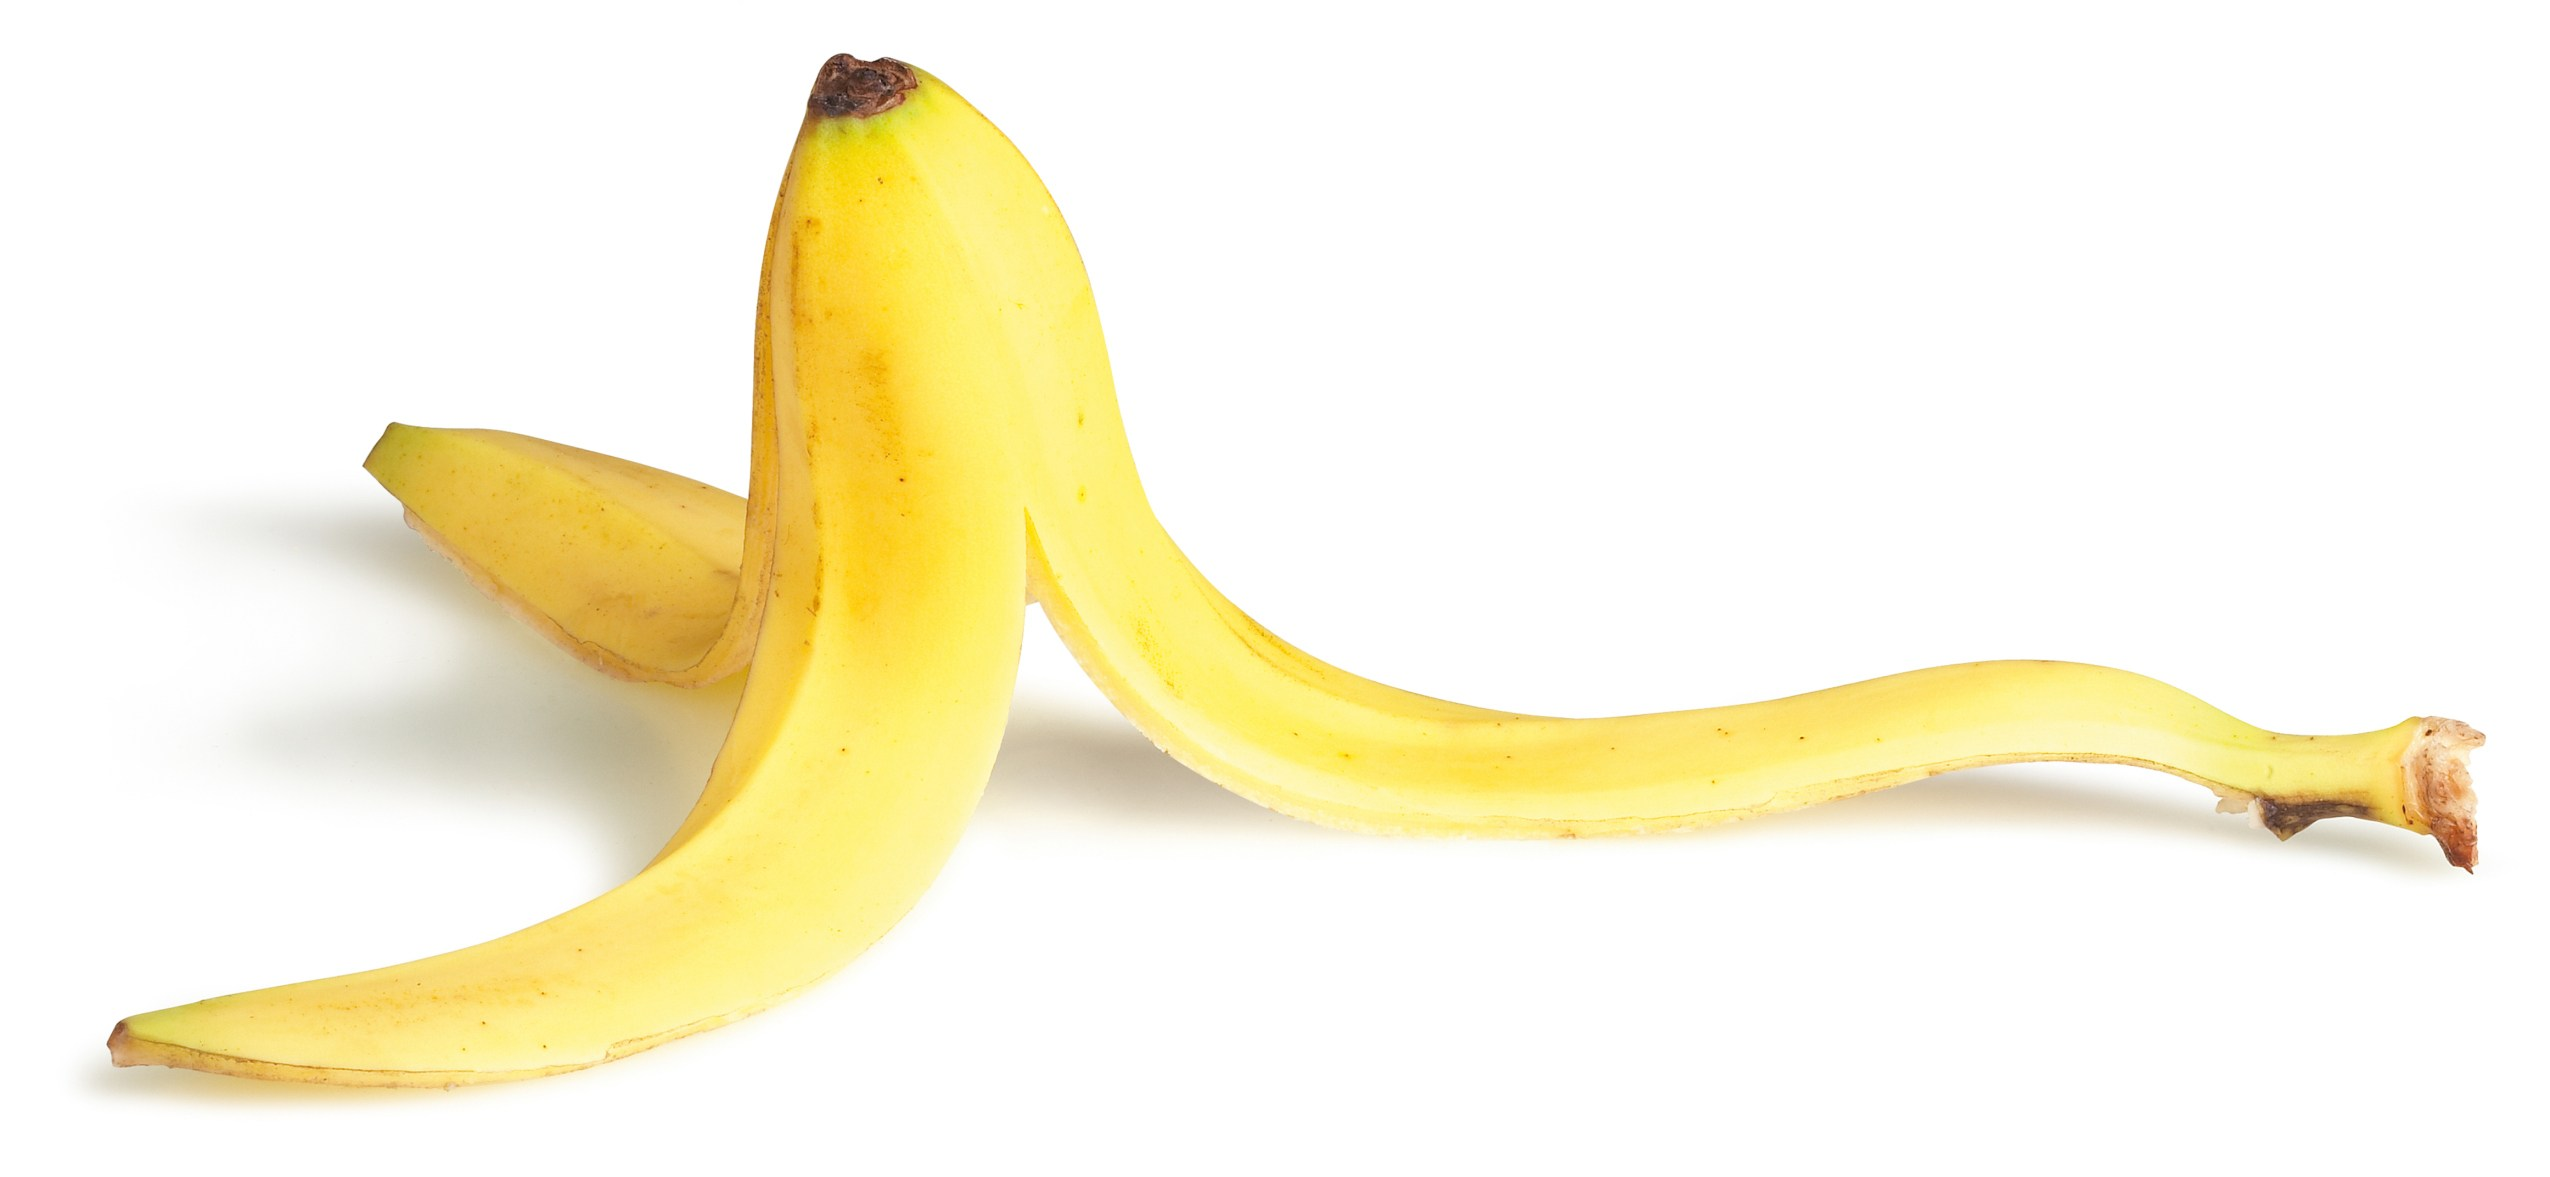 6 Weird Uses of Banana Peels You Probably Didn't Know About - vibe.ng